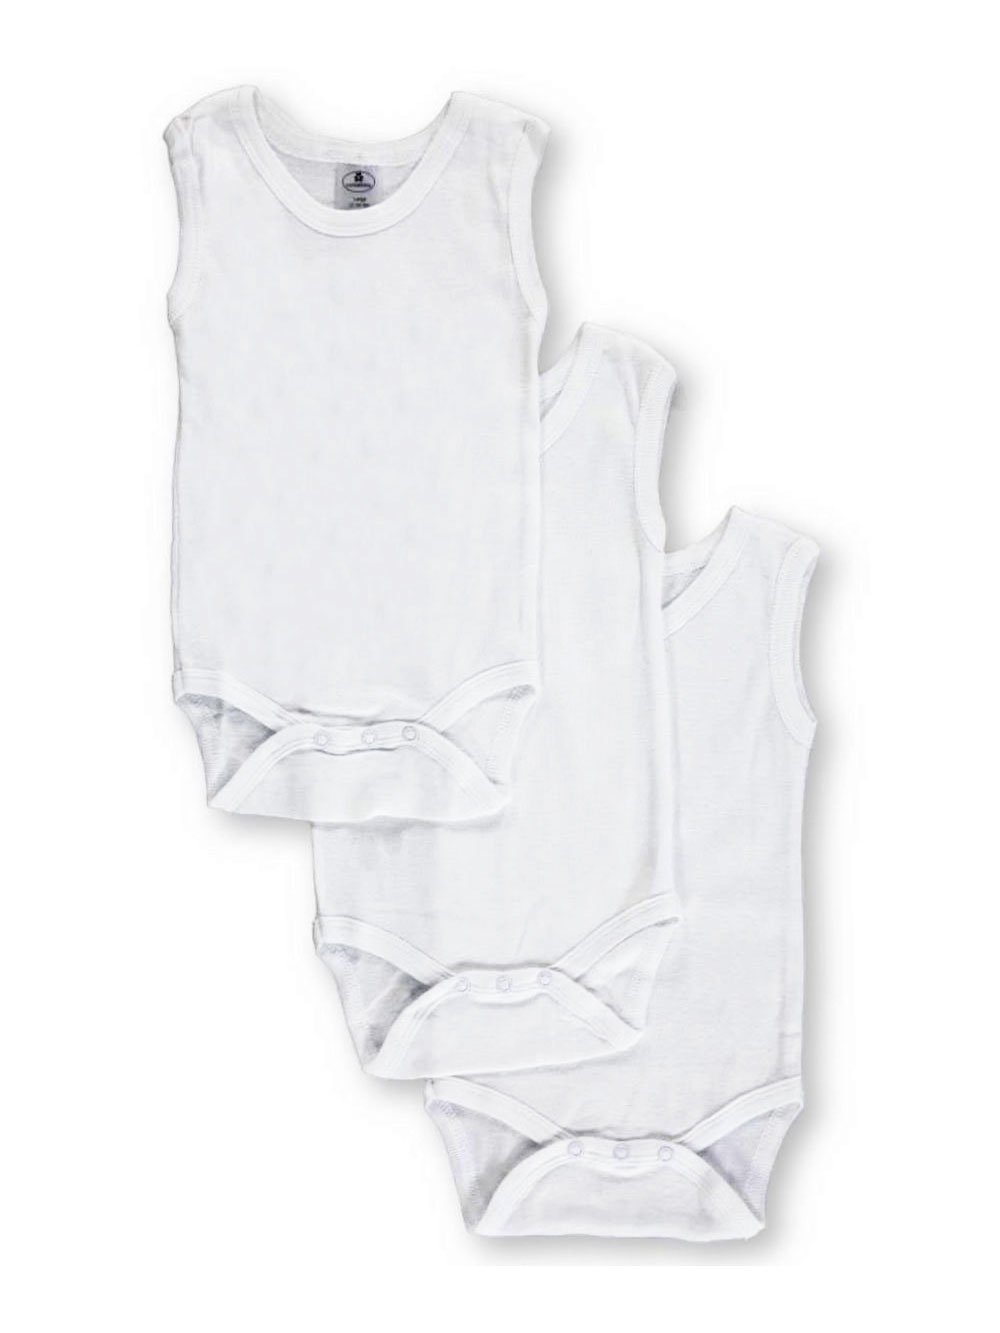 Girls White and Multicolor Bodysuits